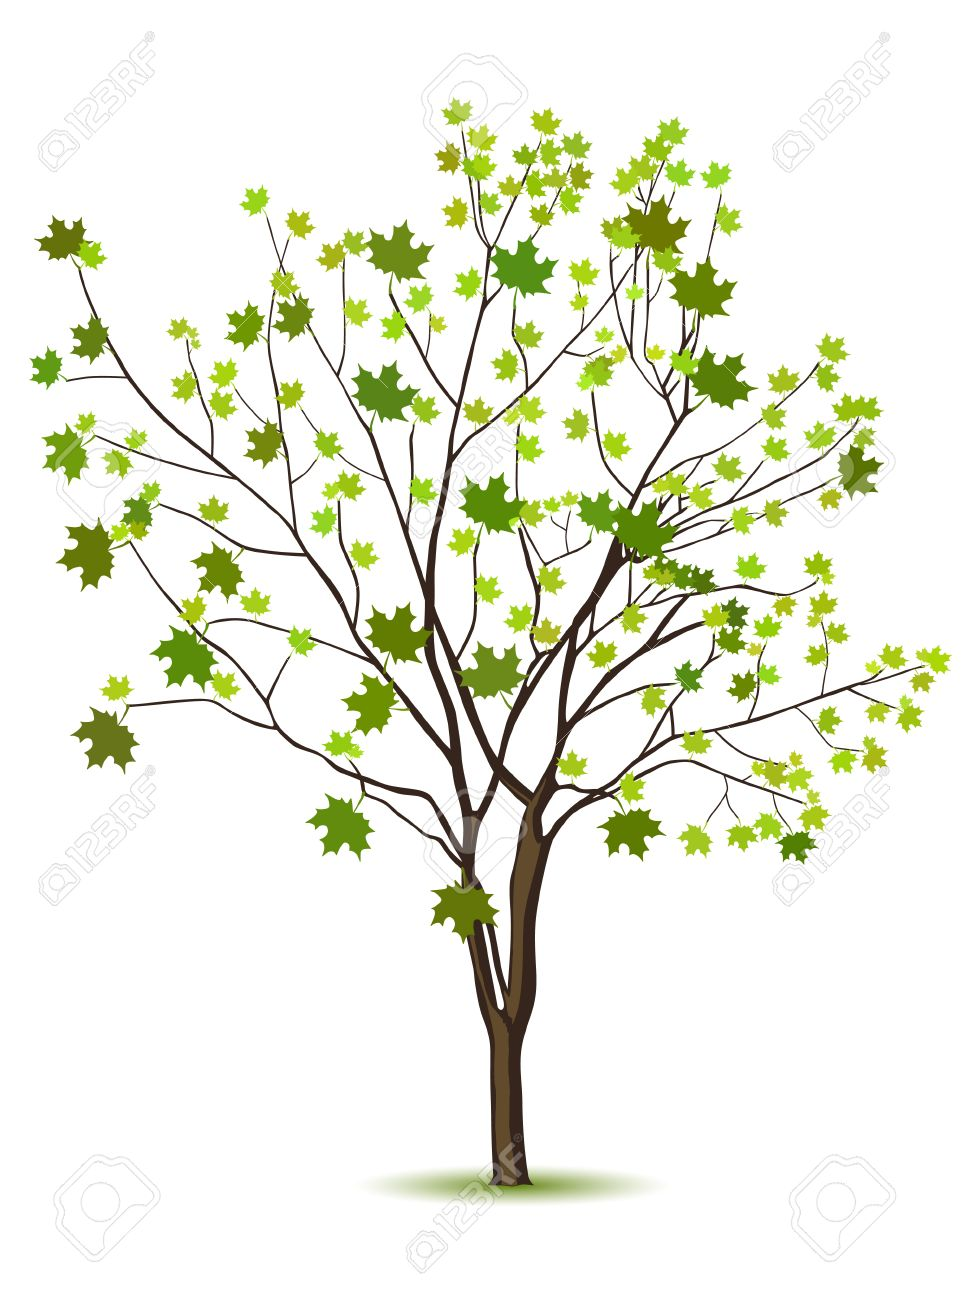 Tree with green leafage isolated on a white - 9057468